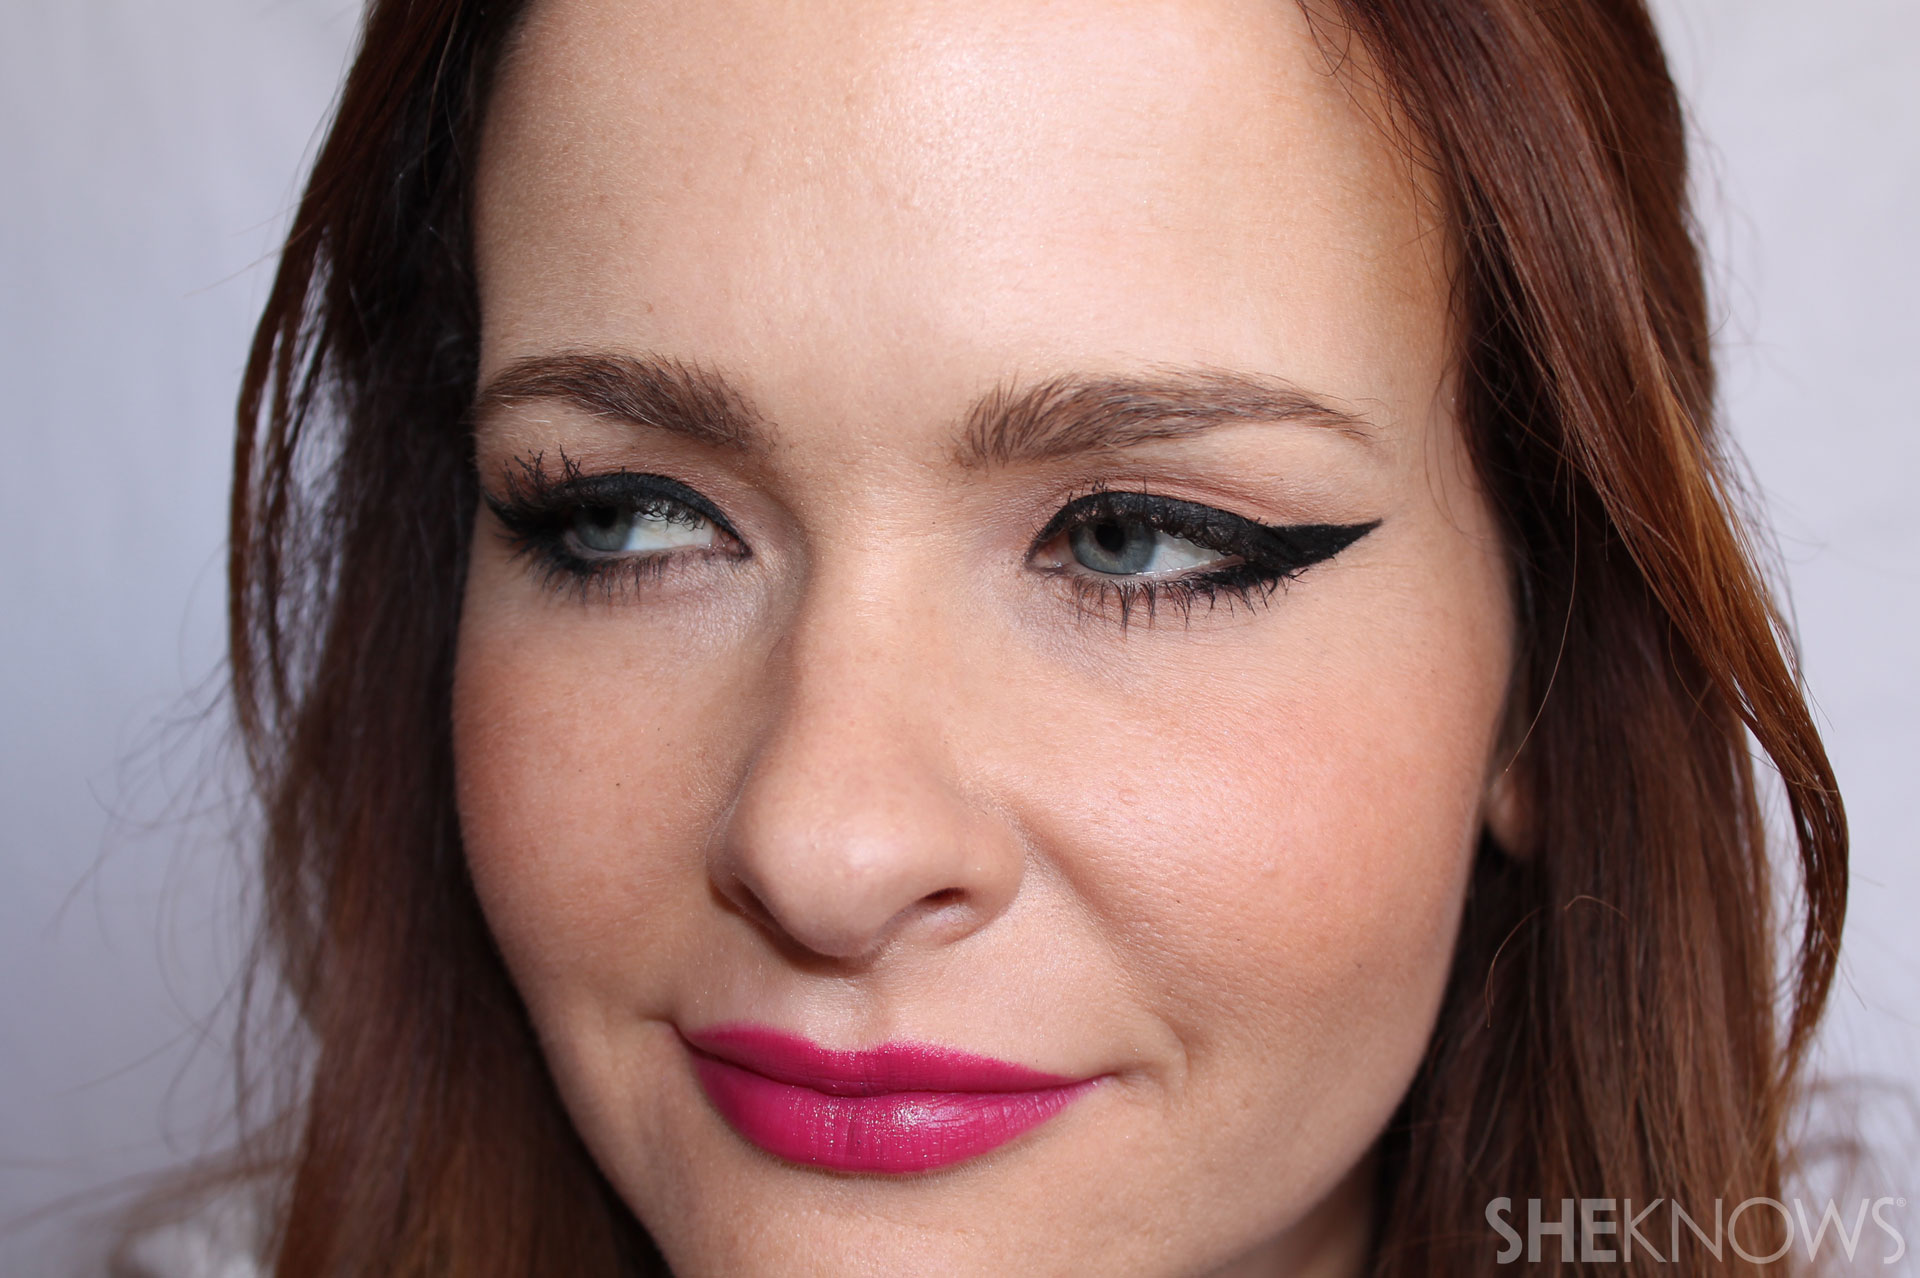 DIY Extreme cateye and bold lips: Brush on soft pink or peach blush